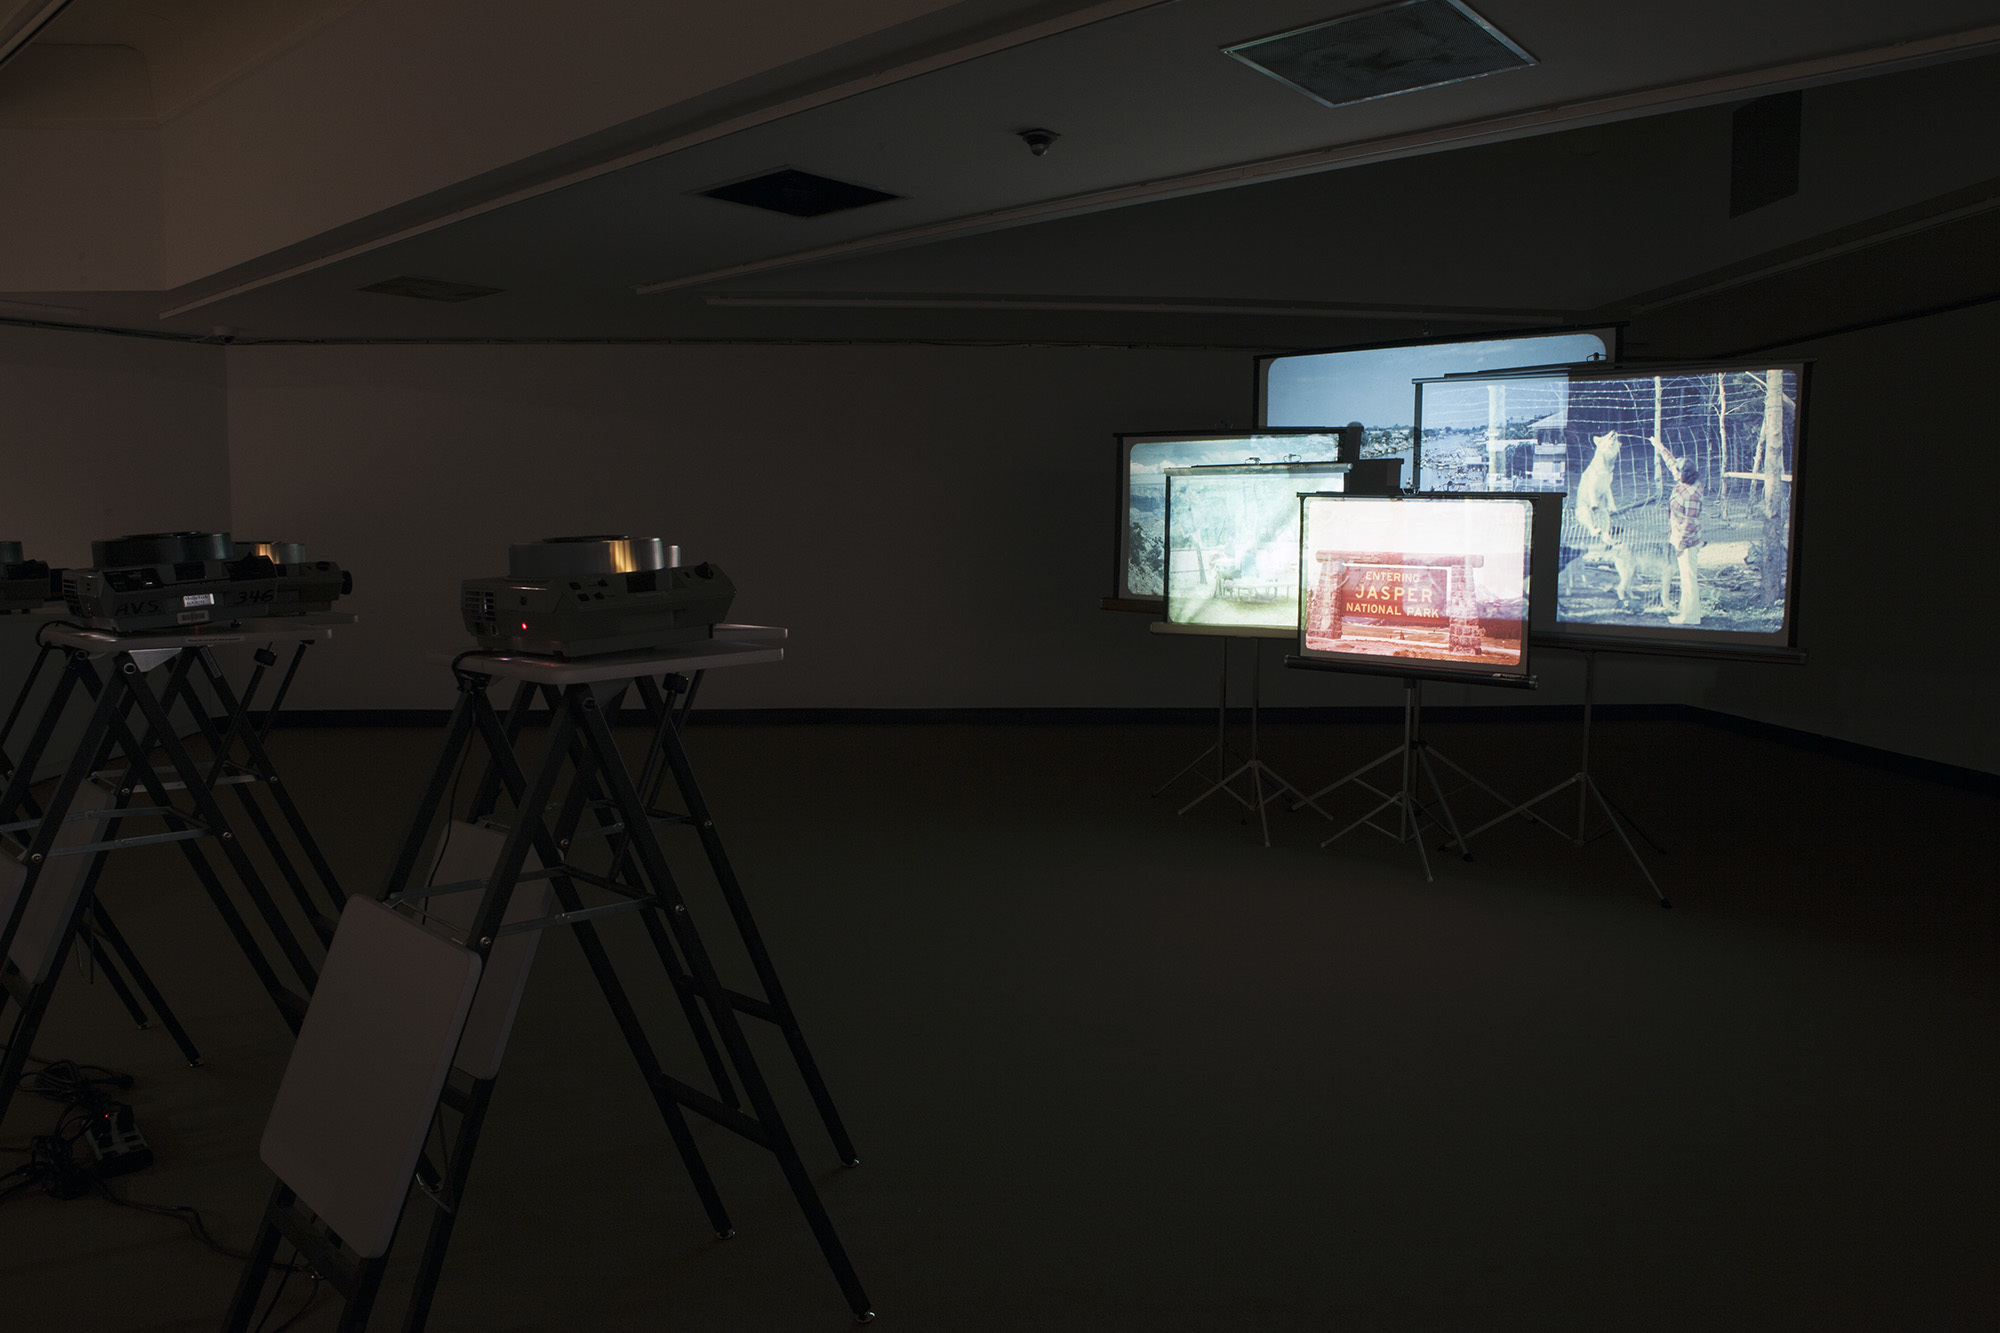 Vesna Pavlović, Search for Landscapes, Photographic installation with five 35 mm slide projectors, 80 slides each, five portable vintage projection screens, and five projector stands, Size variable, 2011